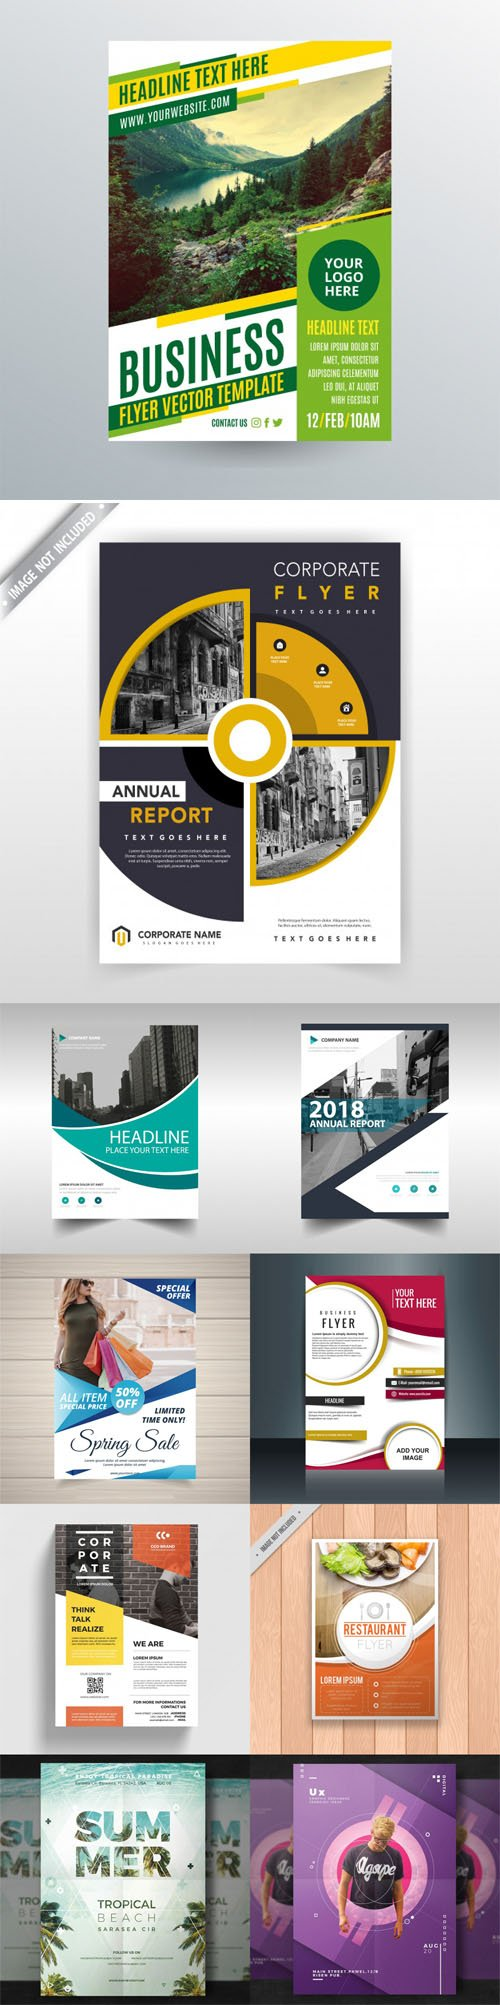 10 Modern Flyers & Brochures Templates in [AI/EPS/PSD]